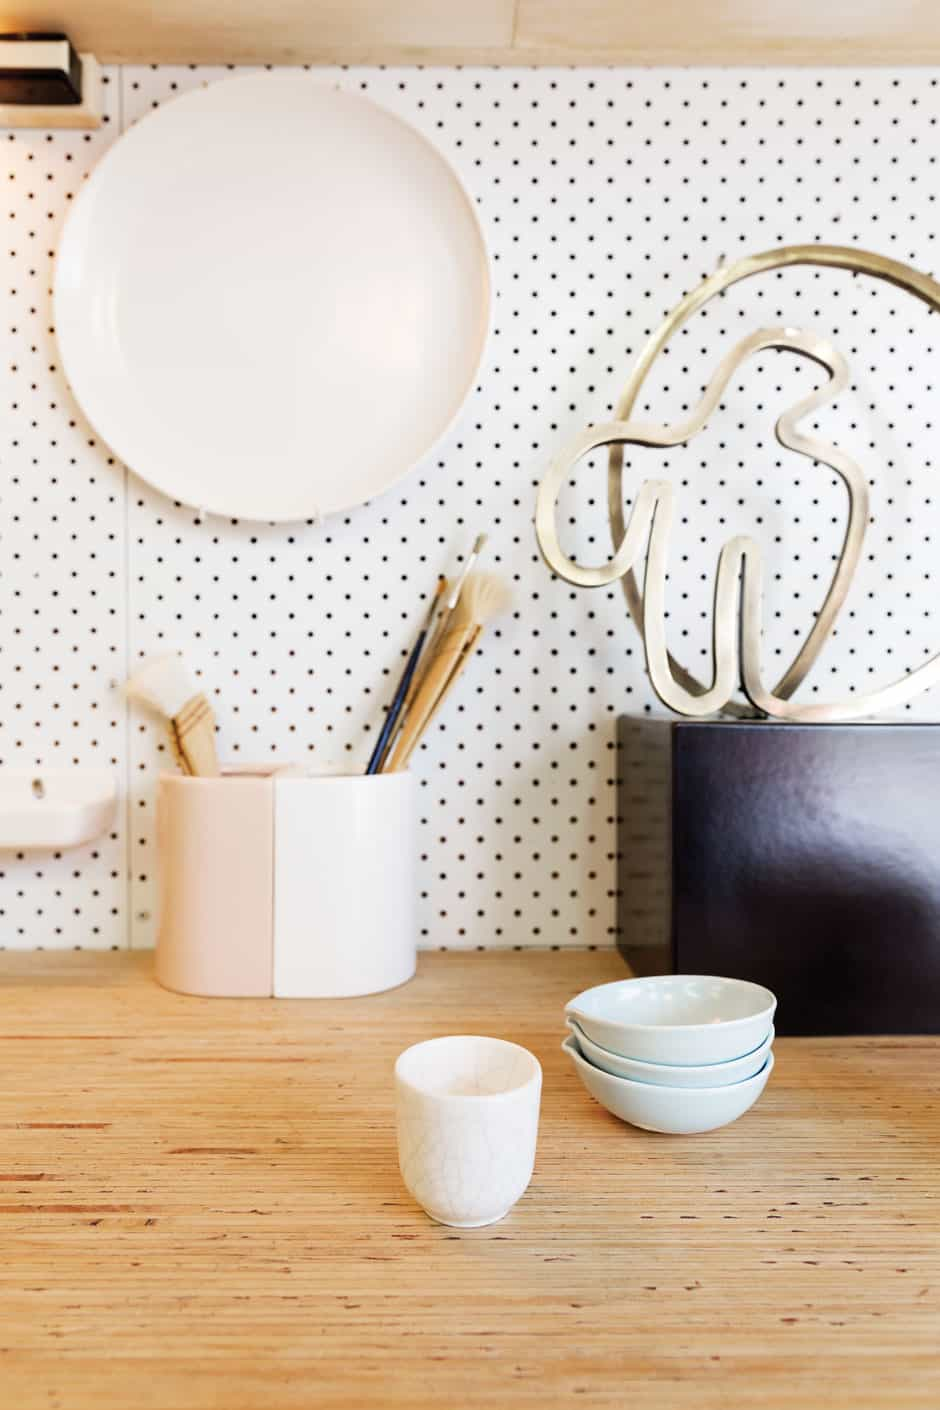 RIGHT Domestic ware from Gidon's ceramics range sits on the workbench alongside an electroplated brass sculpture and pink-and-white bookends designed for a collaboration between Thing Industries and fashion maven Kate Sylvester.